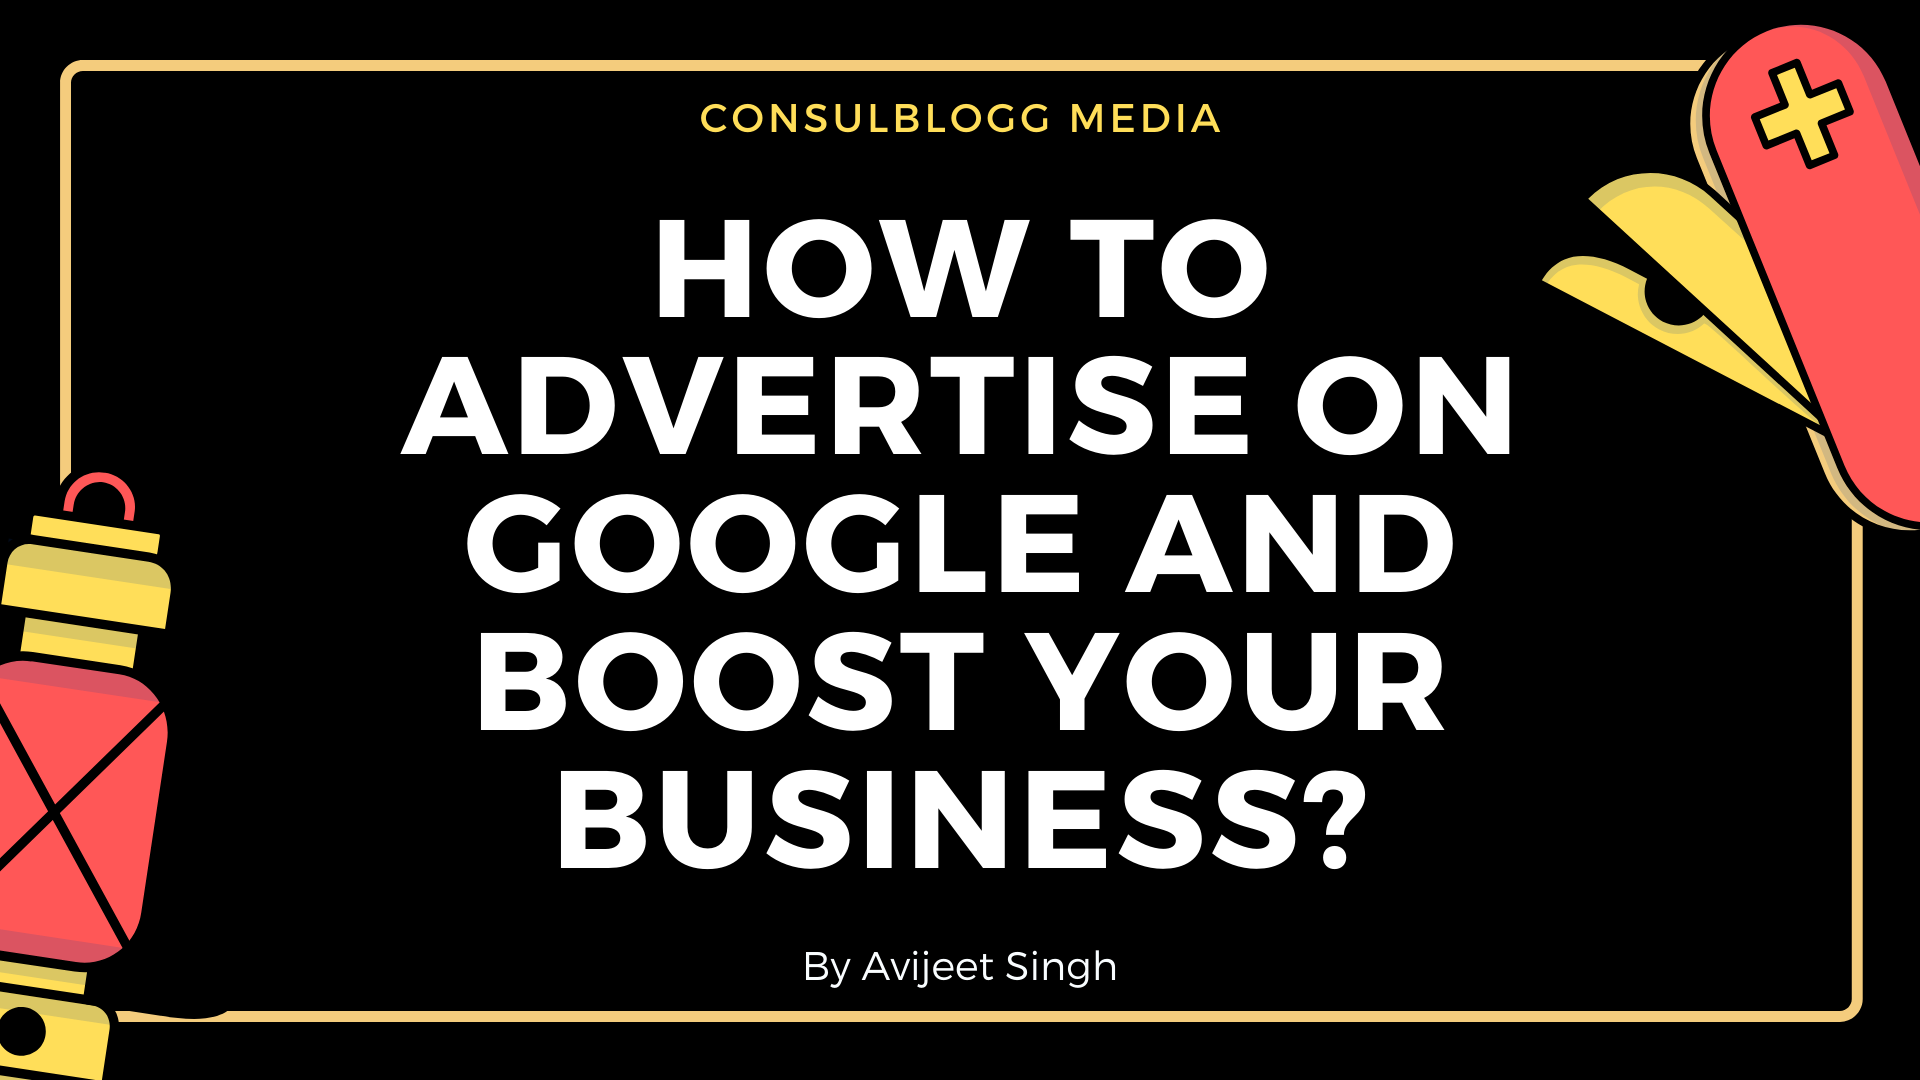 How To Advertise On Google And Boost Your Business